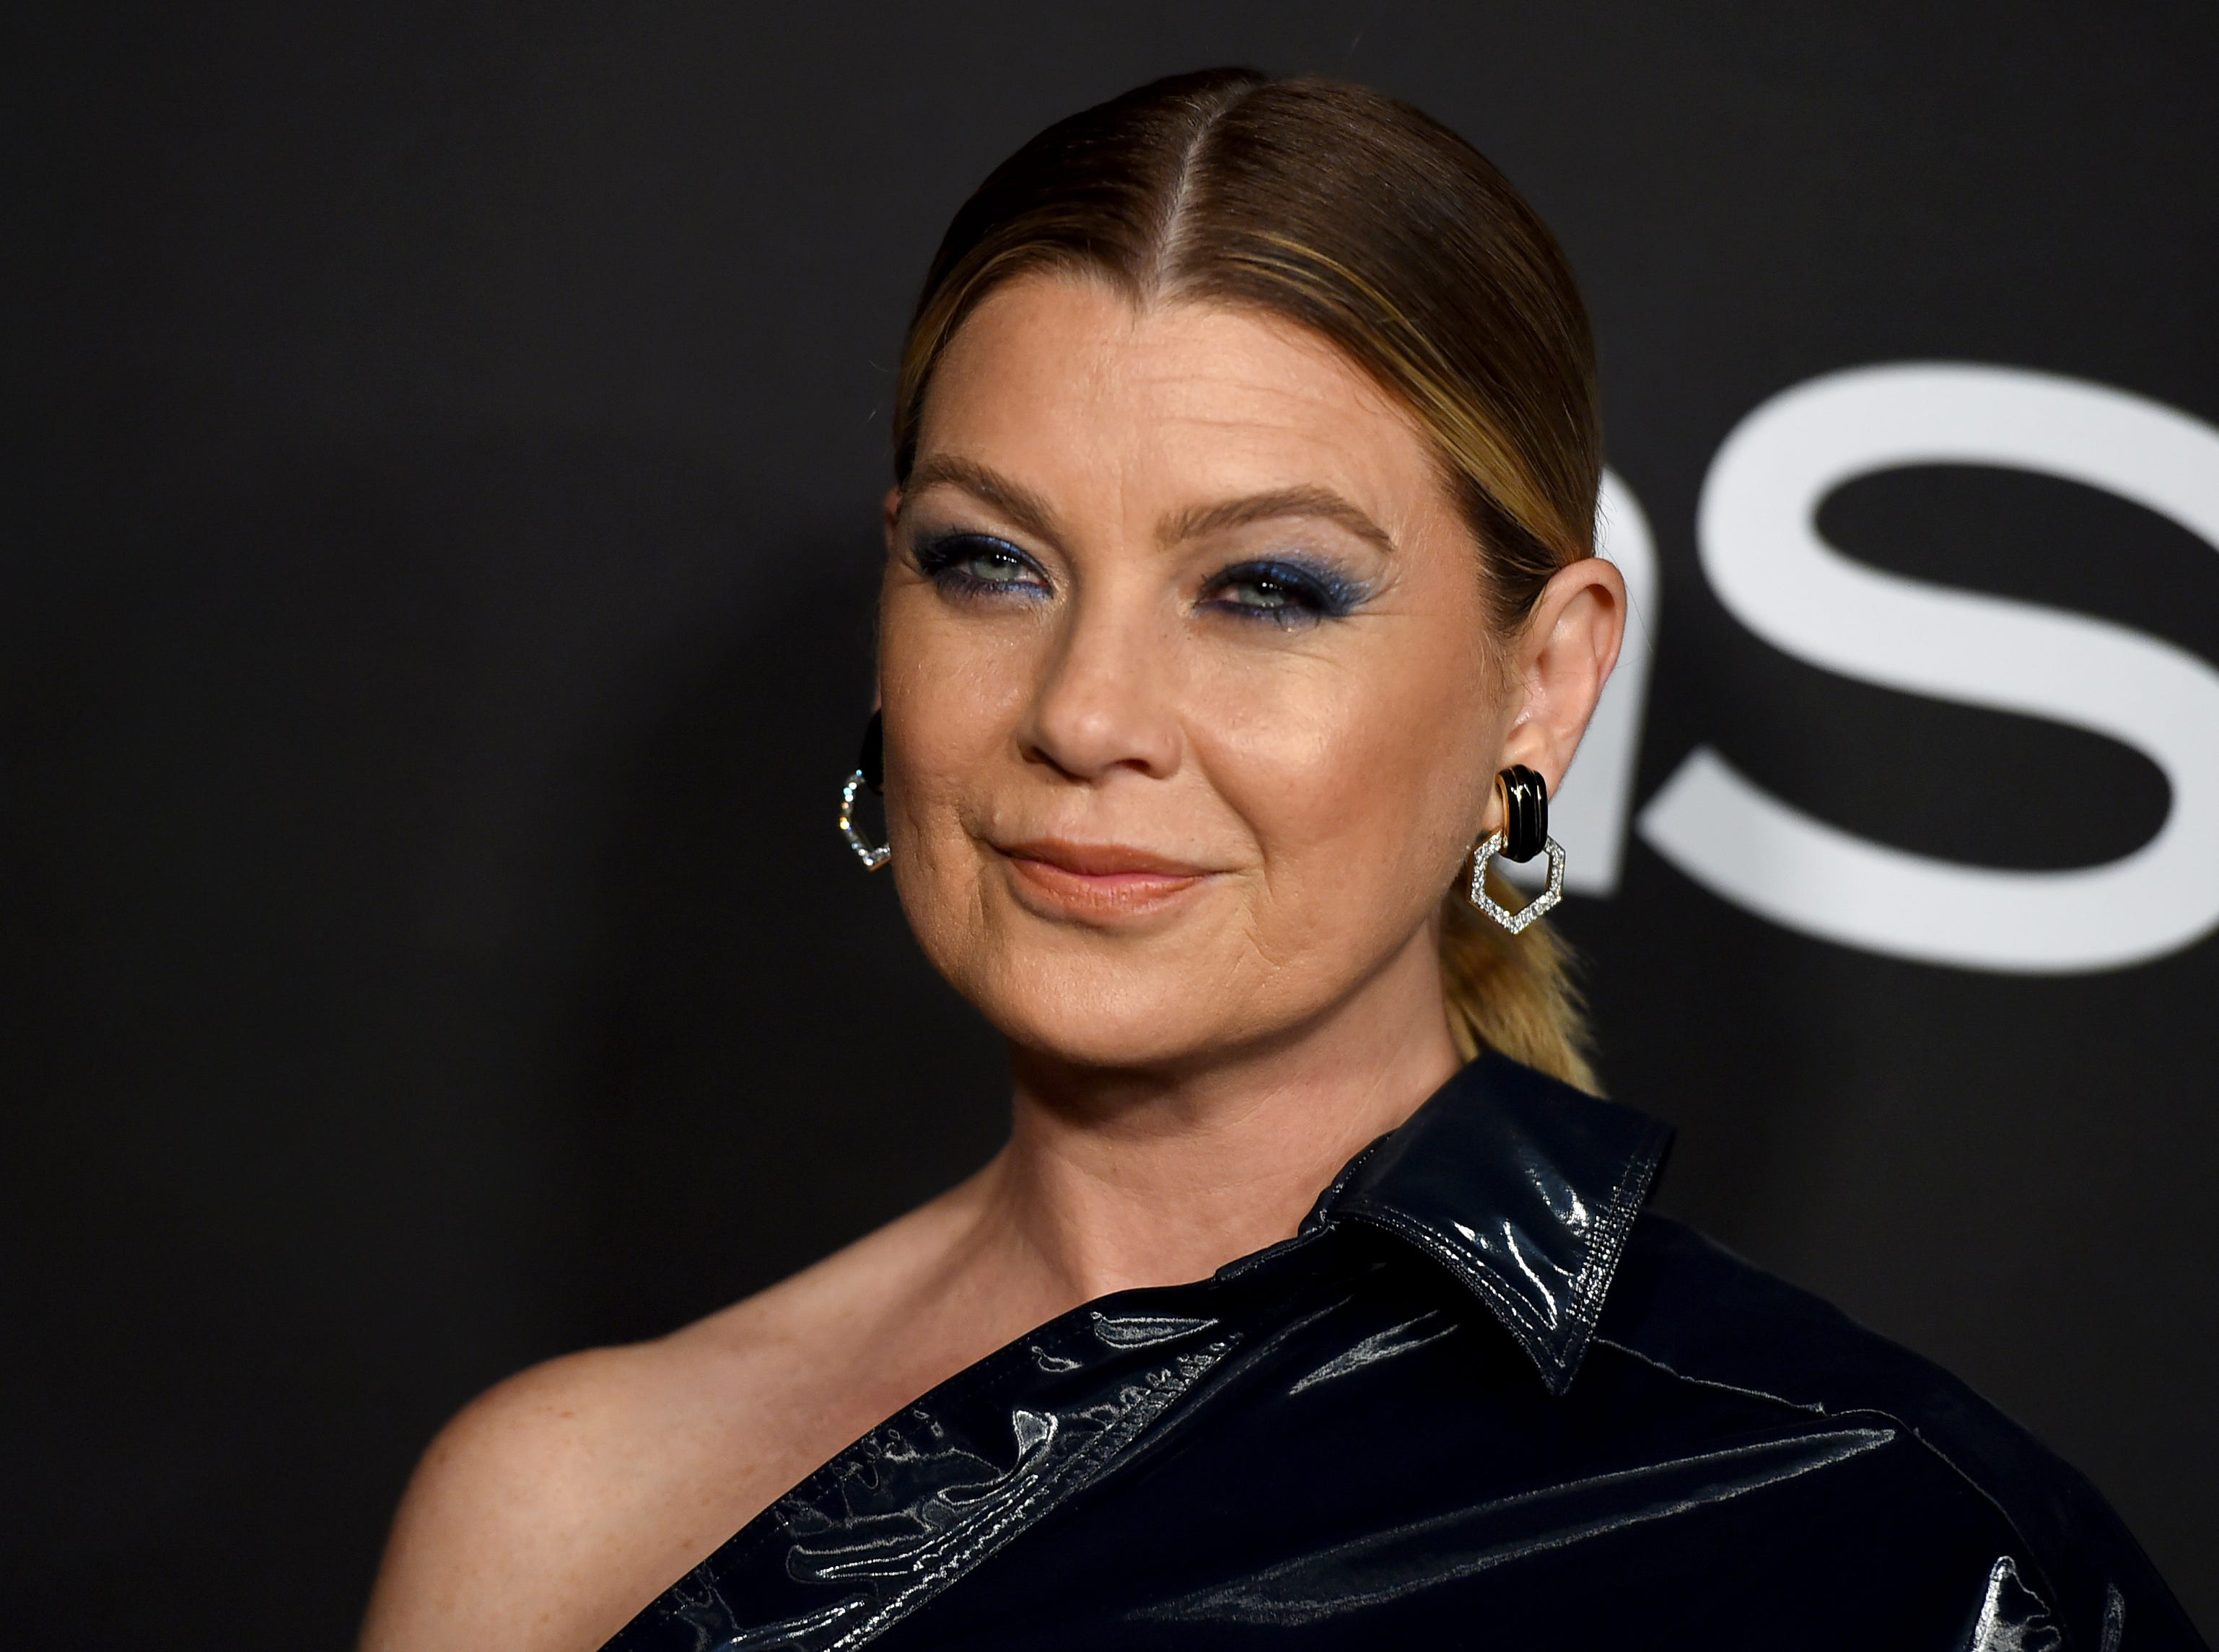 Ellen Pompeo calls out magazine mid-interview for audience's lack of color and diversity